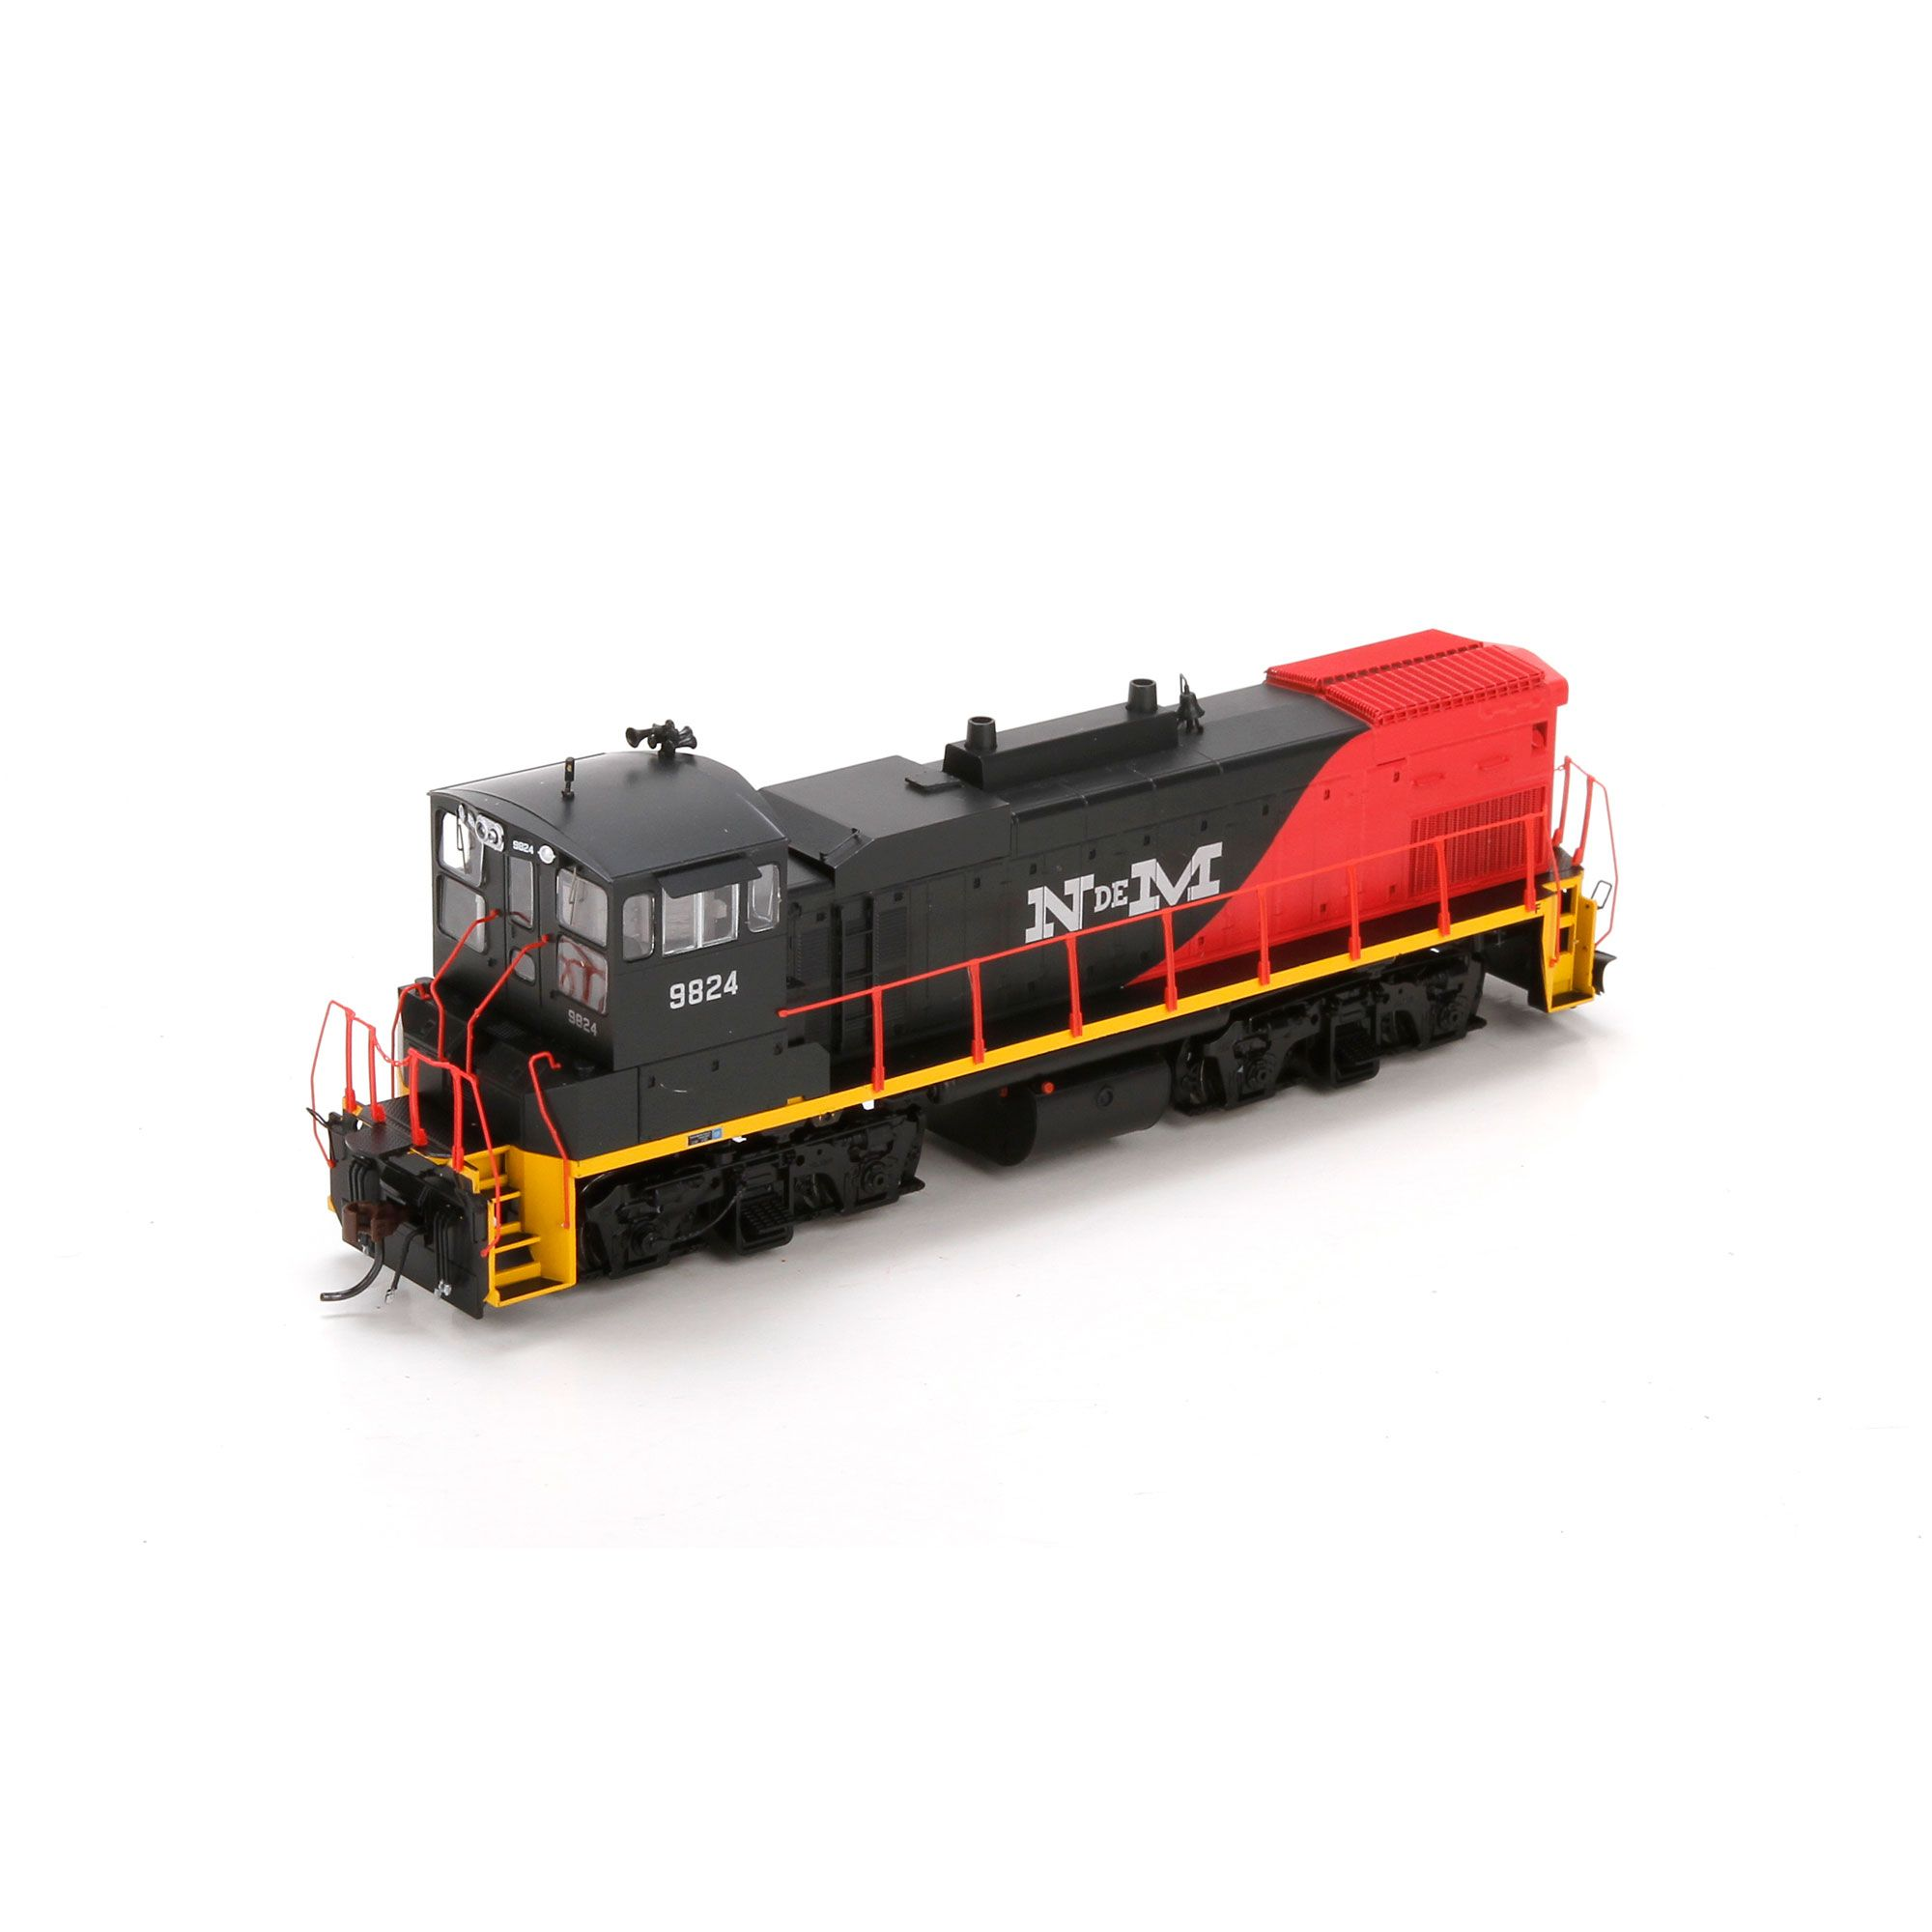 Pin by Scott Hill on Model and RC stuff Ho scale trains